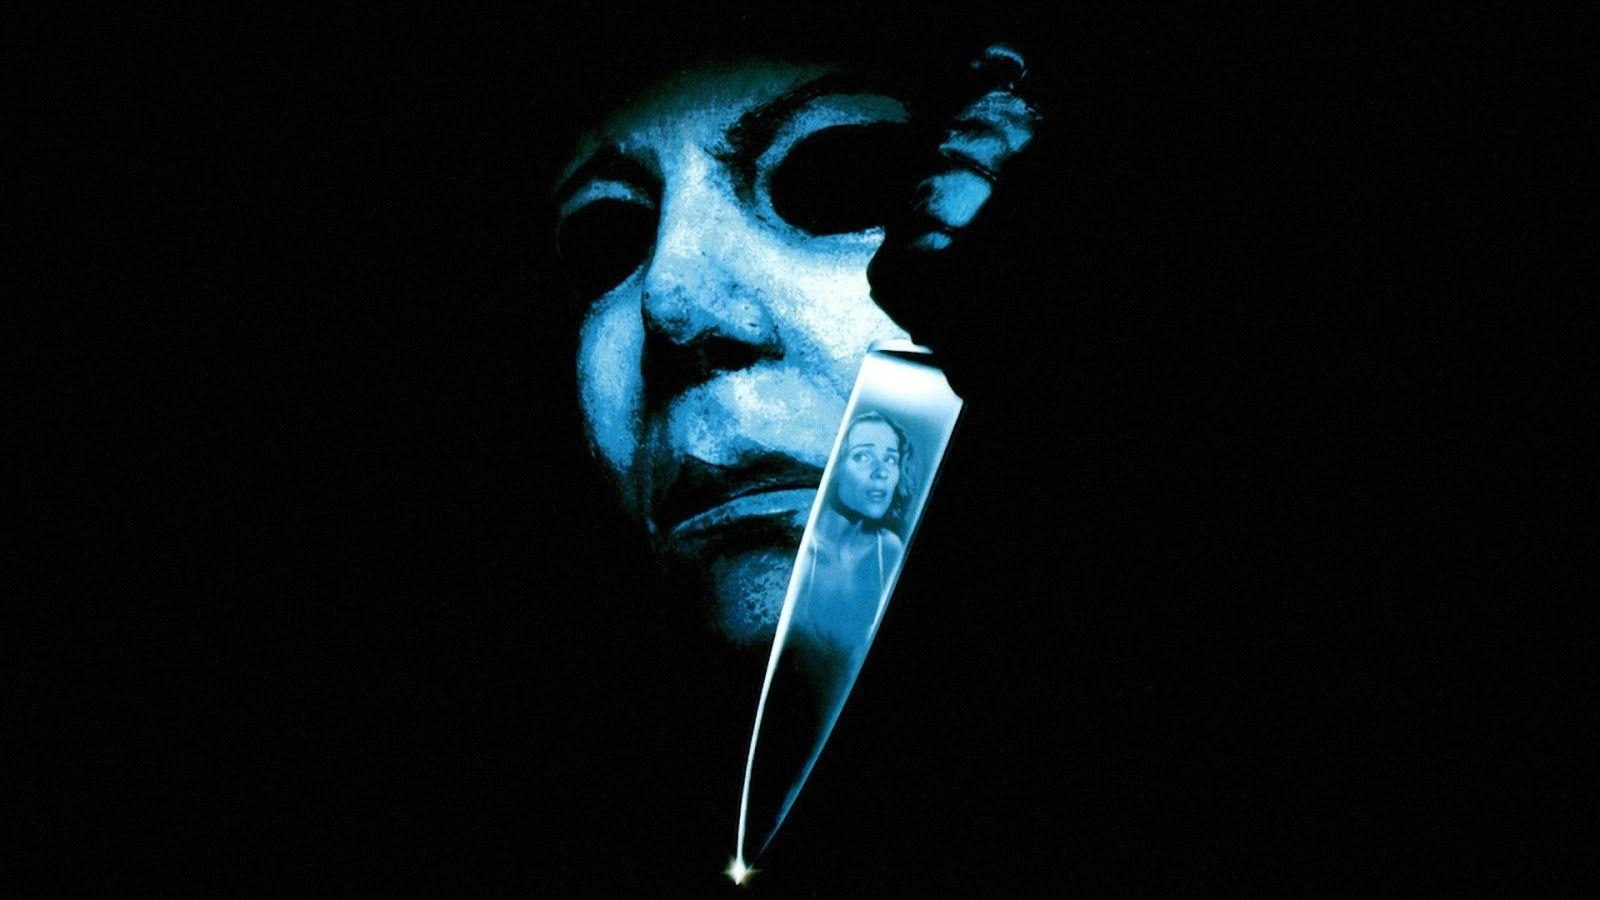 michael myers halloween wallpapers - wallpaper cave